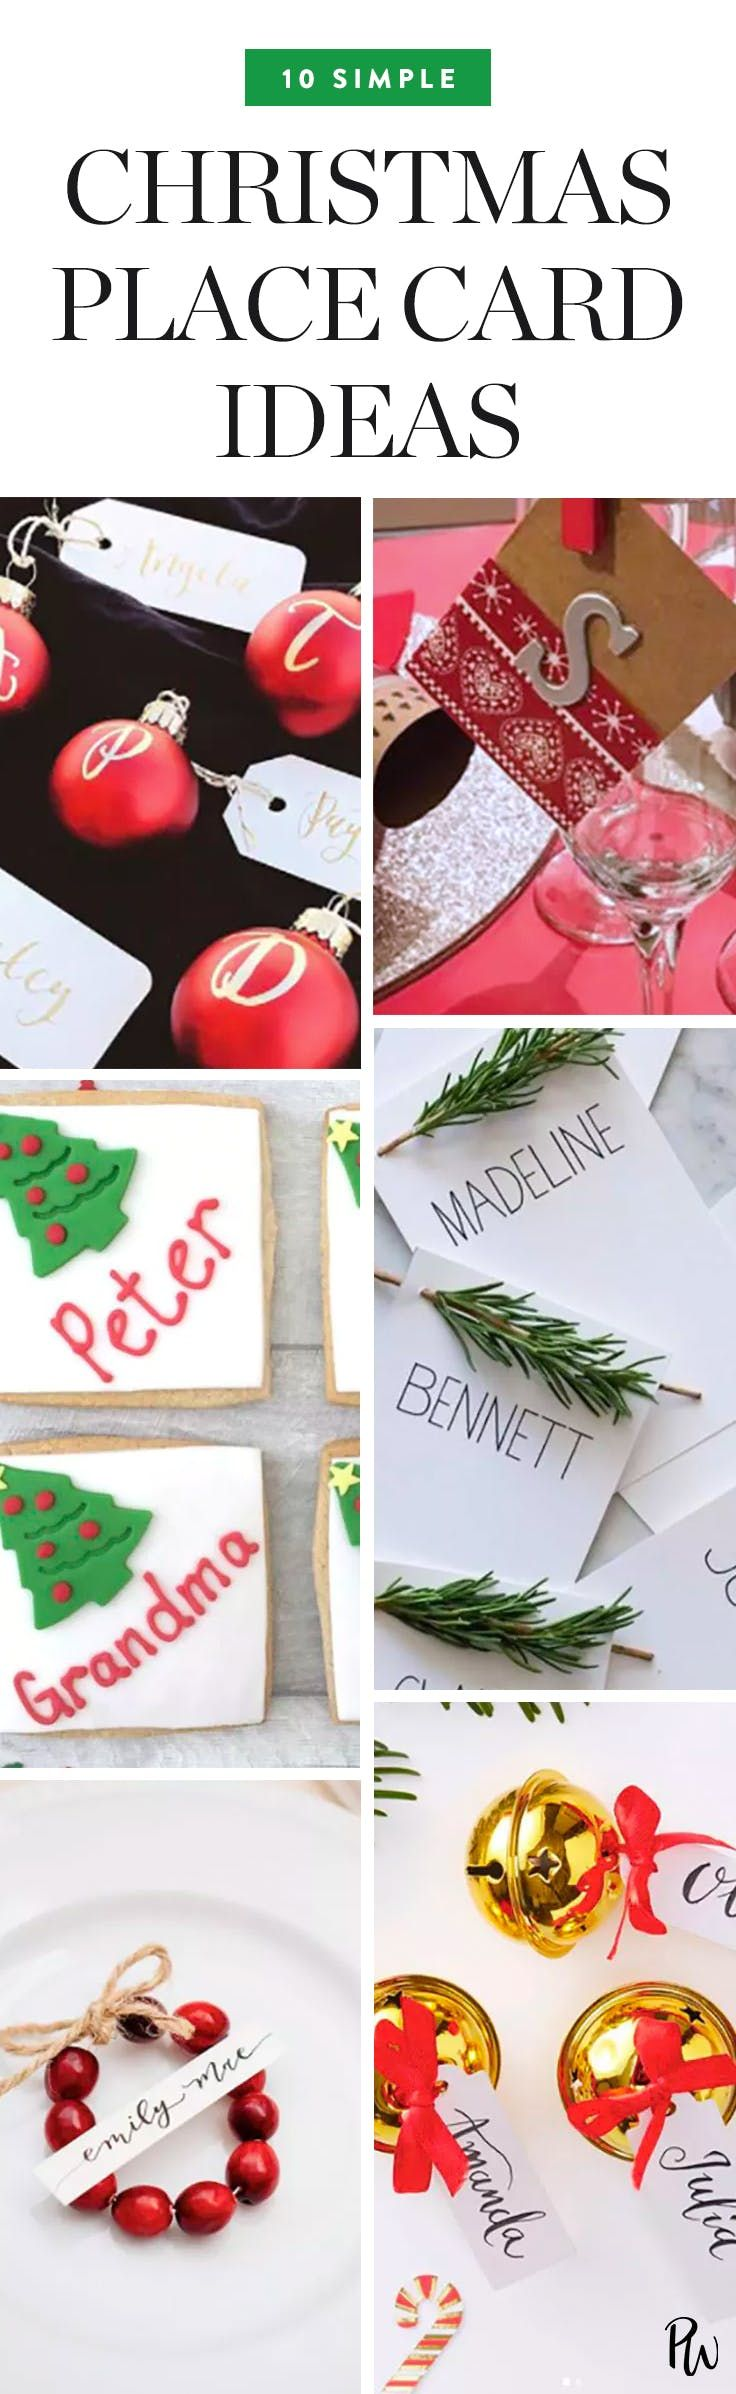 10 Simple Christmas Place Card Ideas for Your Holiday Table ...